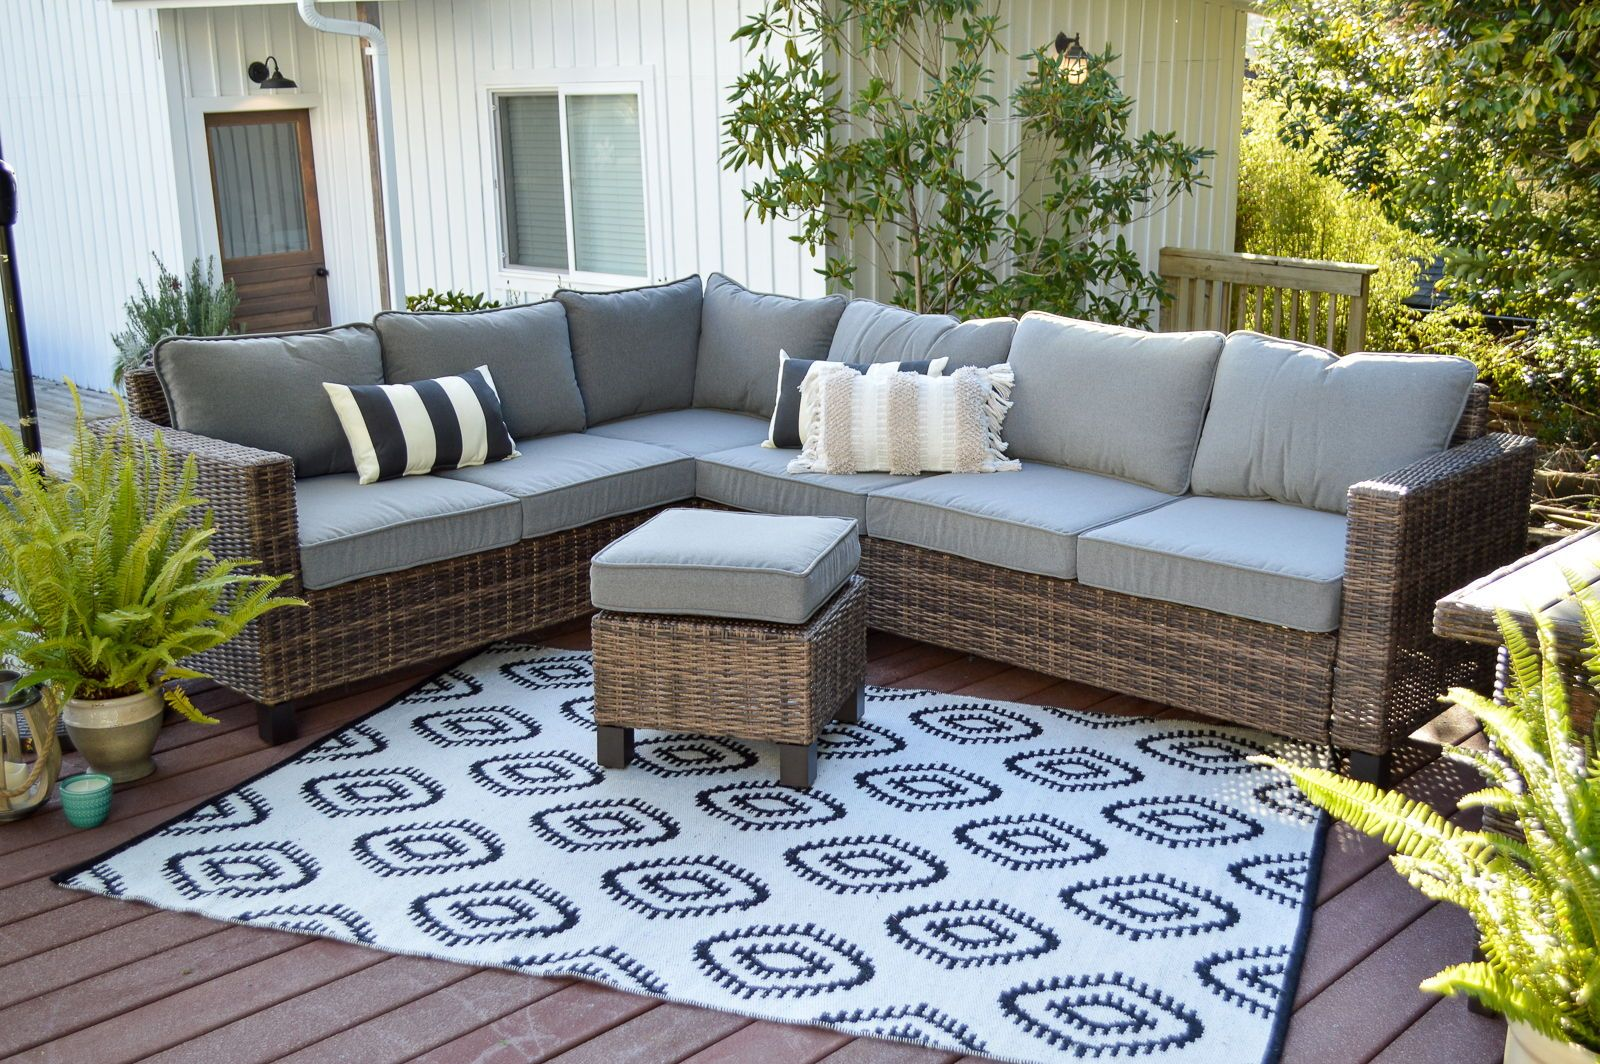 b92b78ca04d450b1e96179df1437adec - Better And Homes And Gardens Furniture